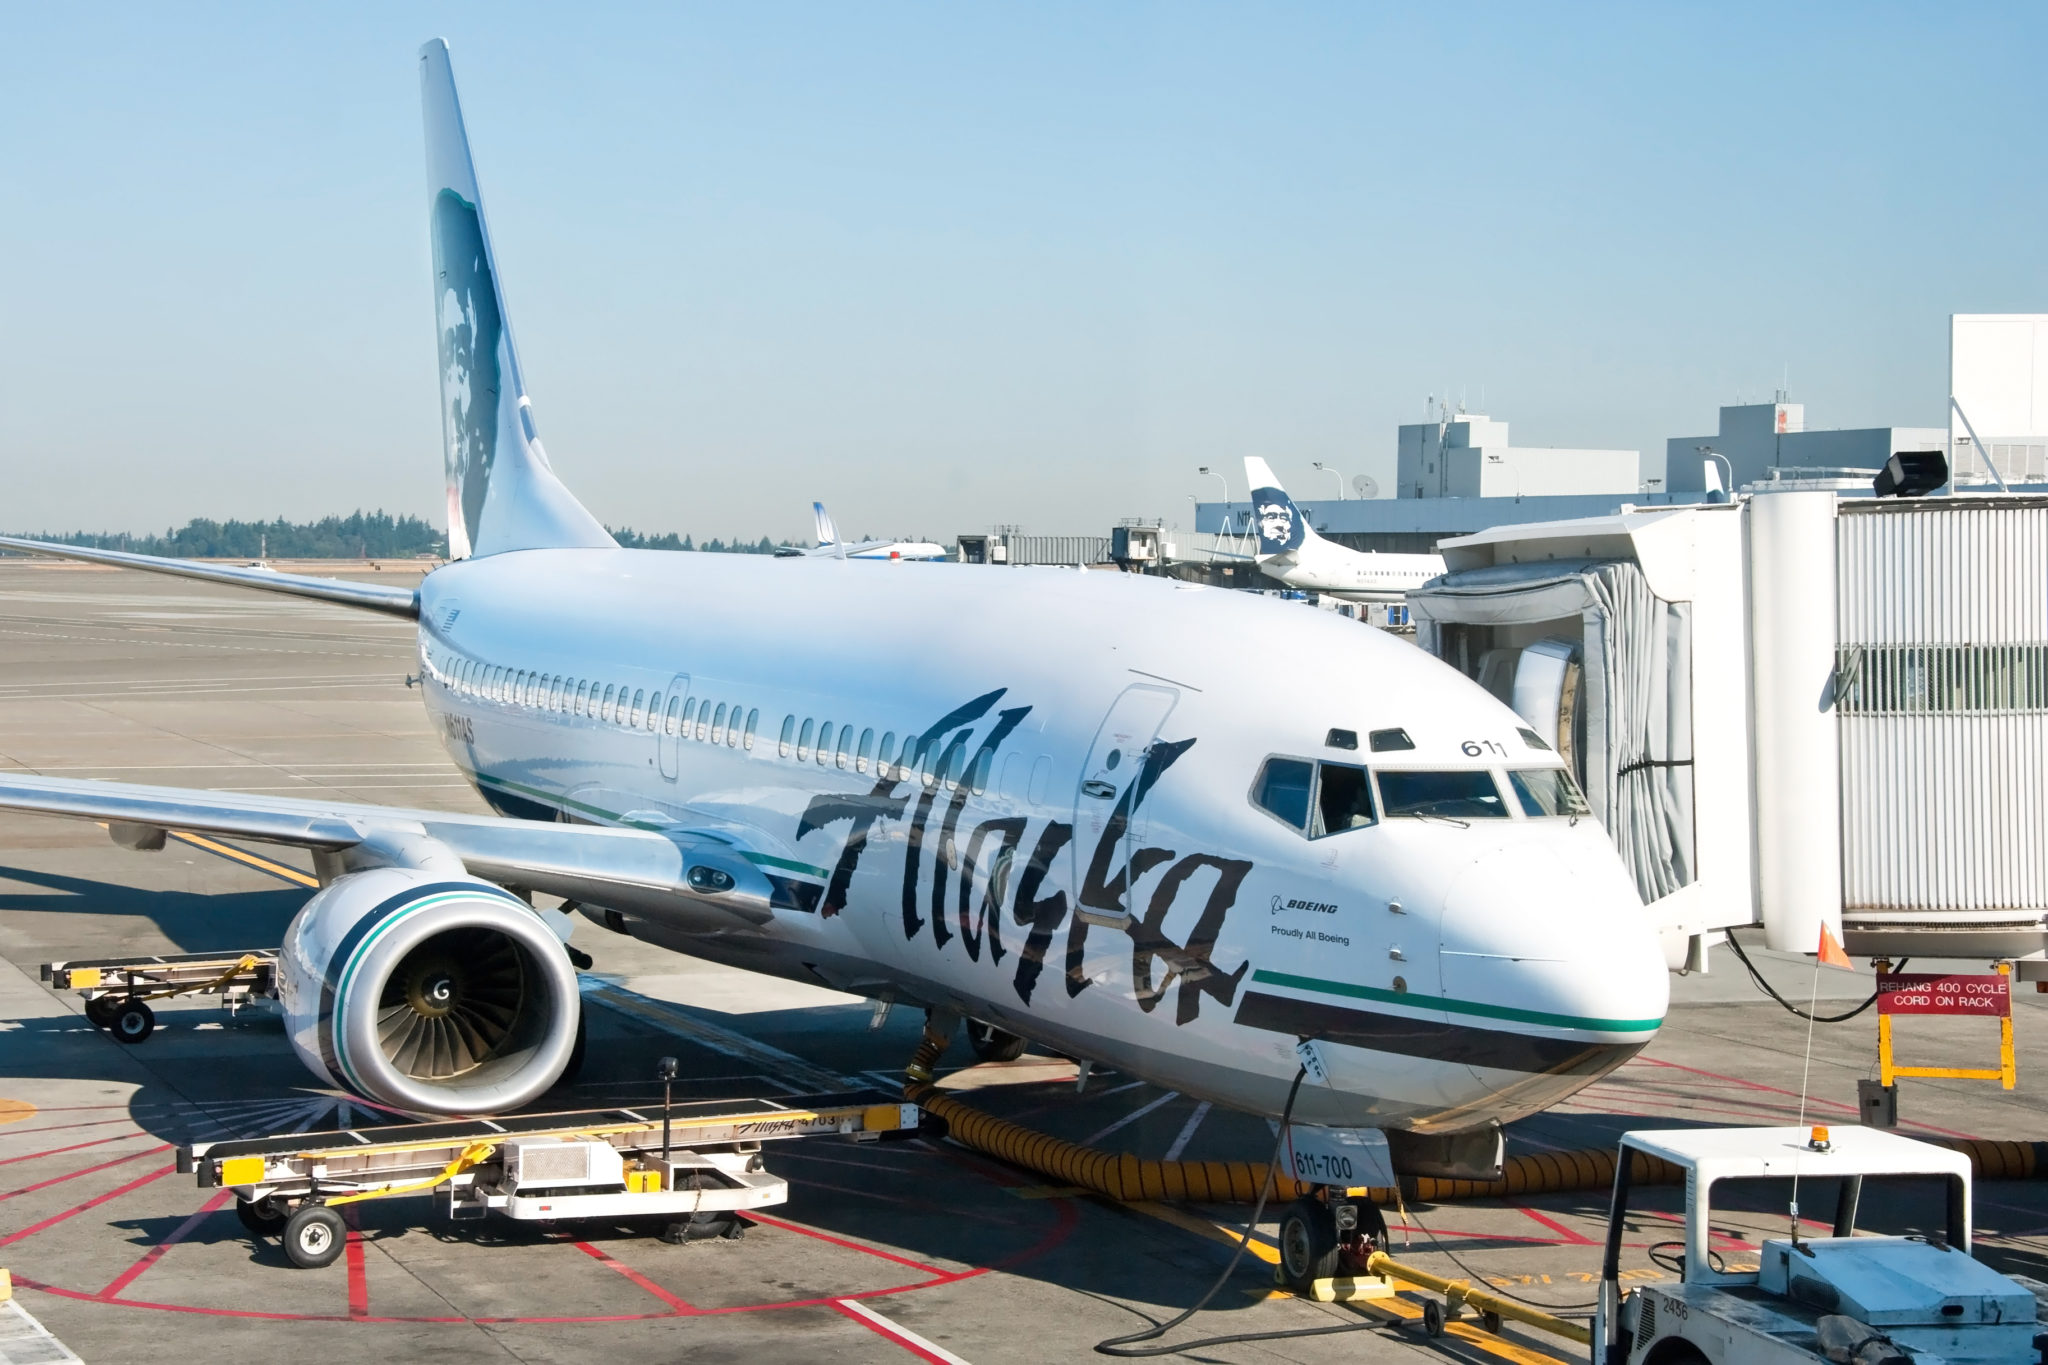 Alaska Airlines Mileage Plan Loyalty Program Review